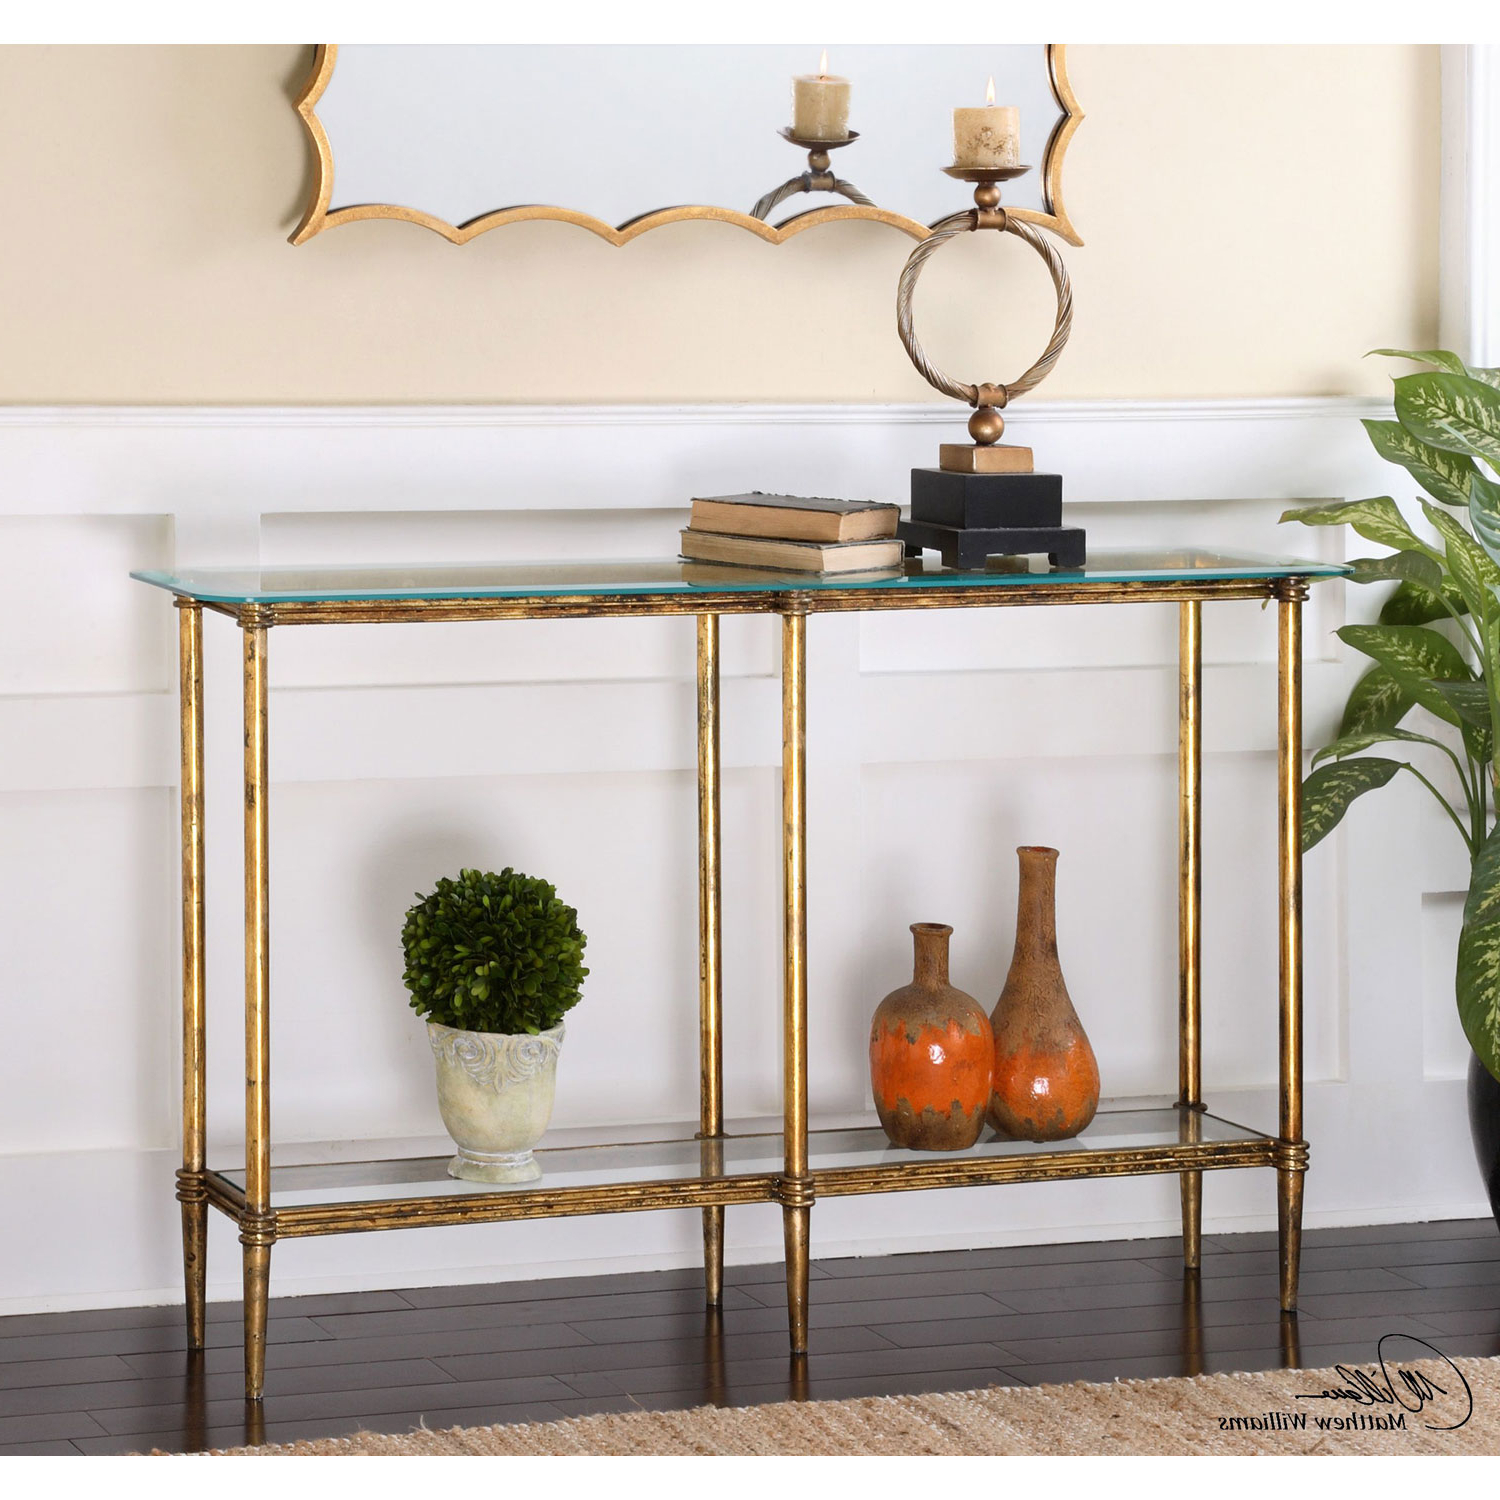 Uttermost Elenio Bright Gold Console Table 24421 | Bellacor Pertaining To Jacque Console Tables (View 10 of 20)